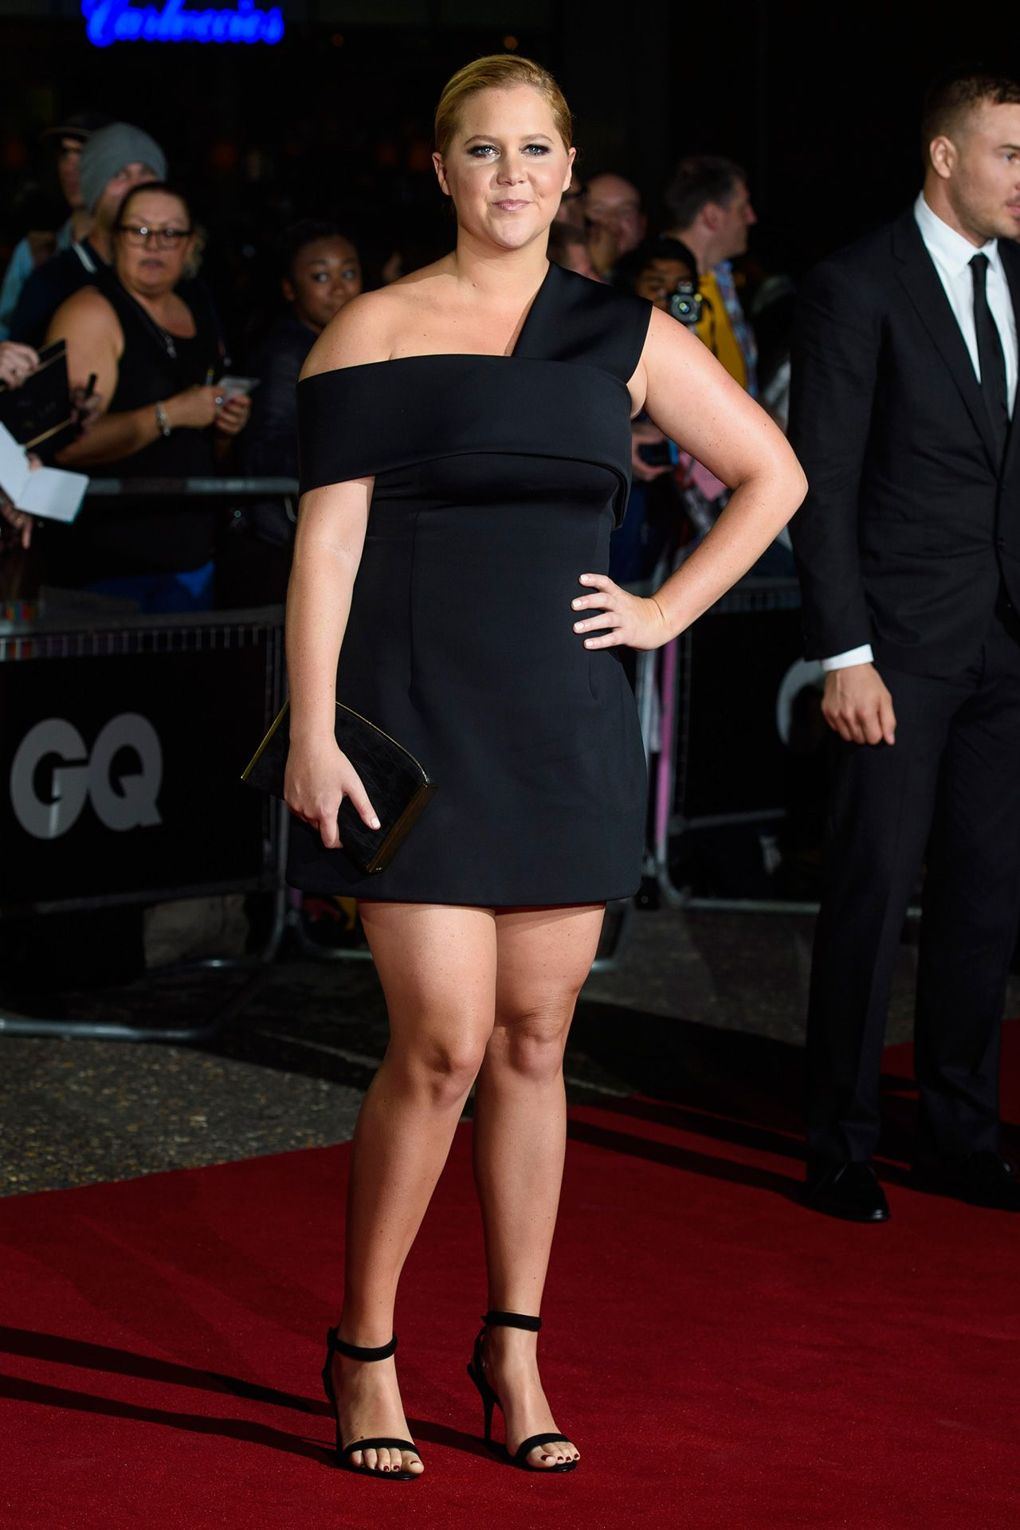 Amy Schumer at the GQ Men Of The Year Awards